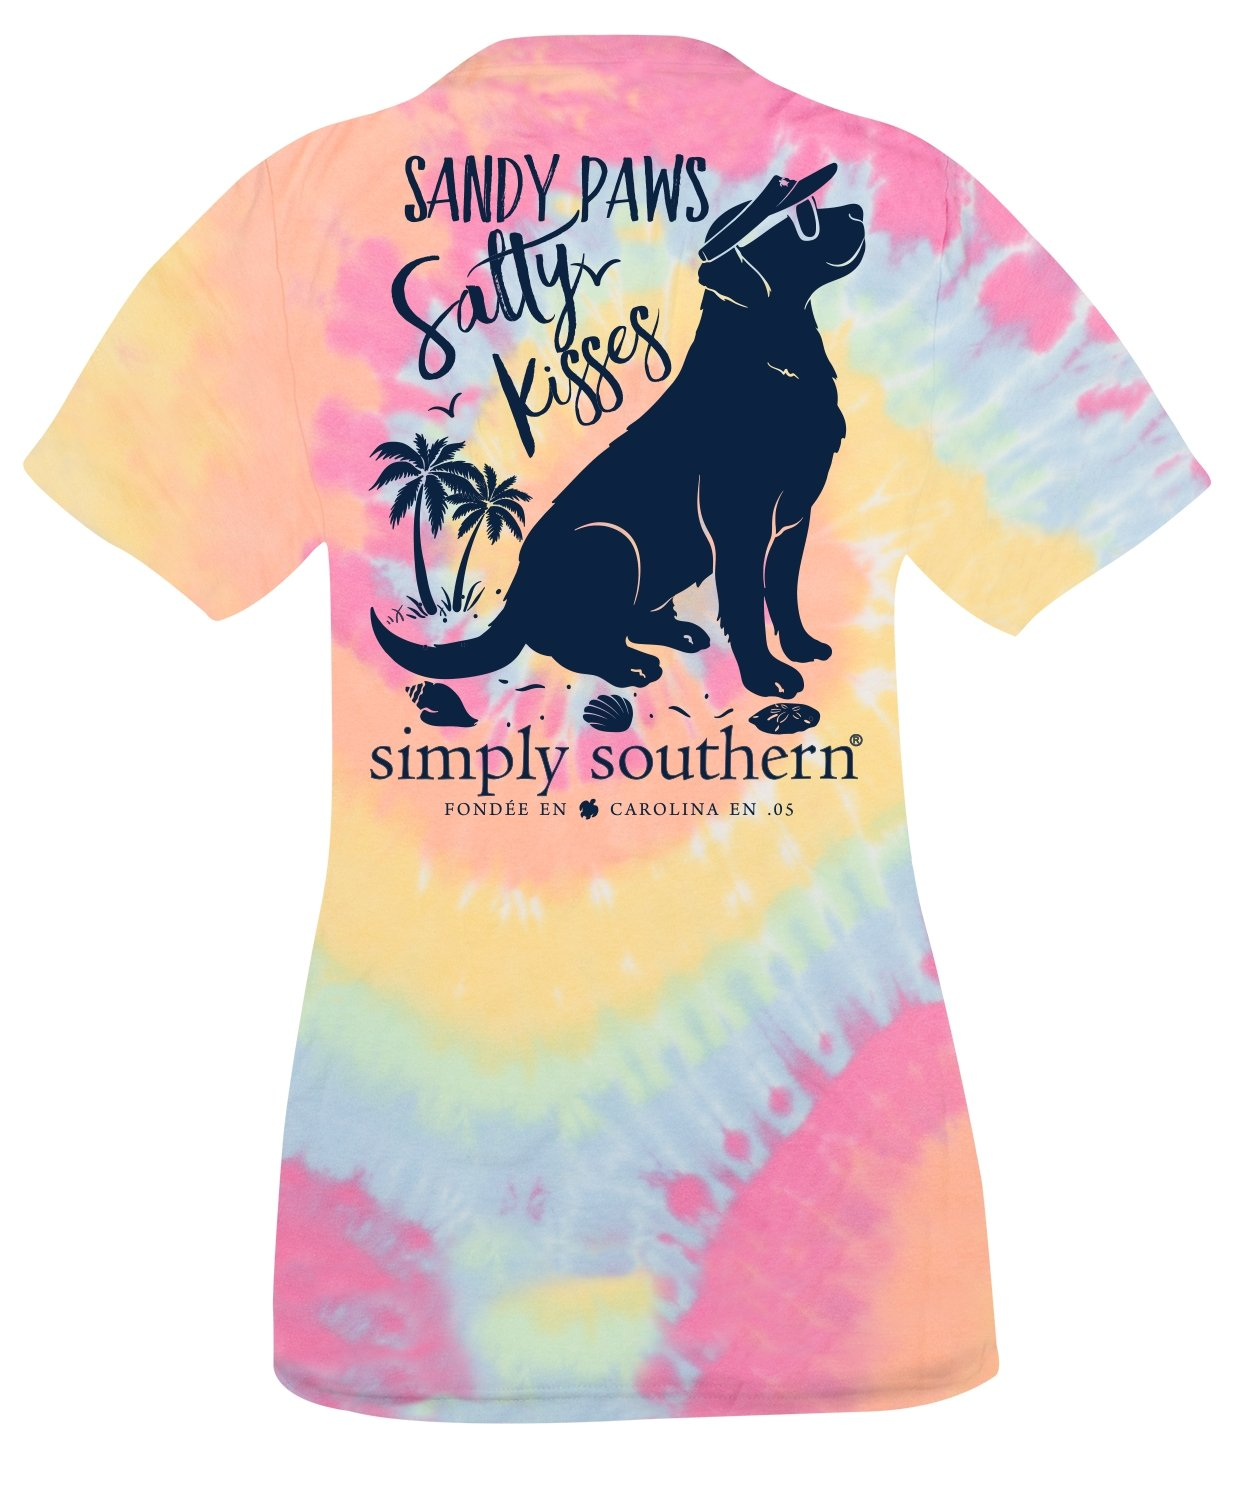 YTH-SANDY-TIEDYE T-SHIRT - Molly's! A Chic and Unique Boutique